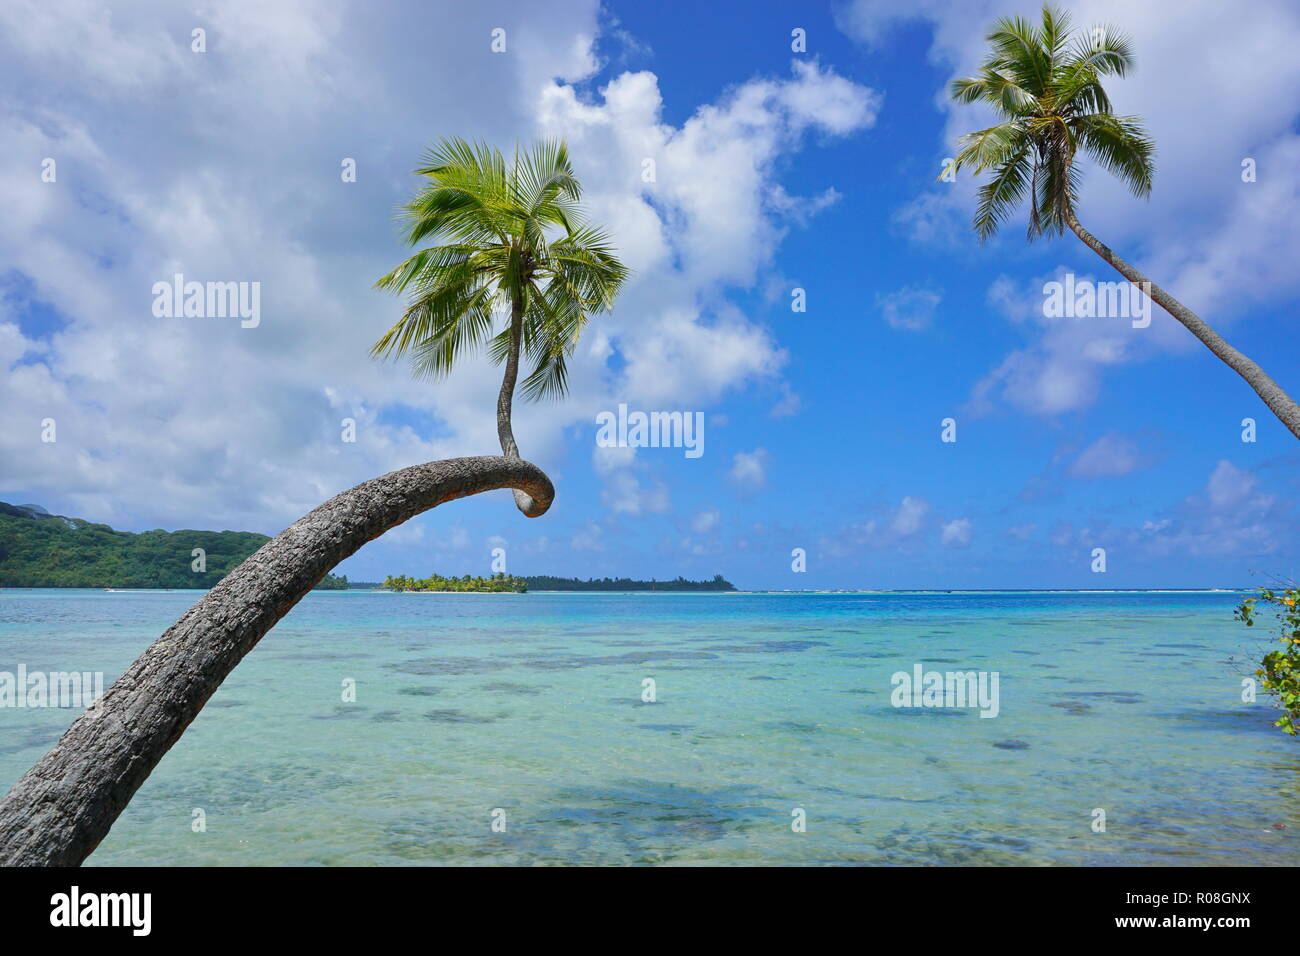 Tropical seascape two coconut palm trees lean over clear water with cloudy blue sky, French Polynesia, Huahine, south Pacific ocean - Stock Image